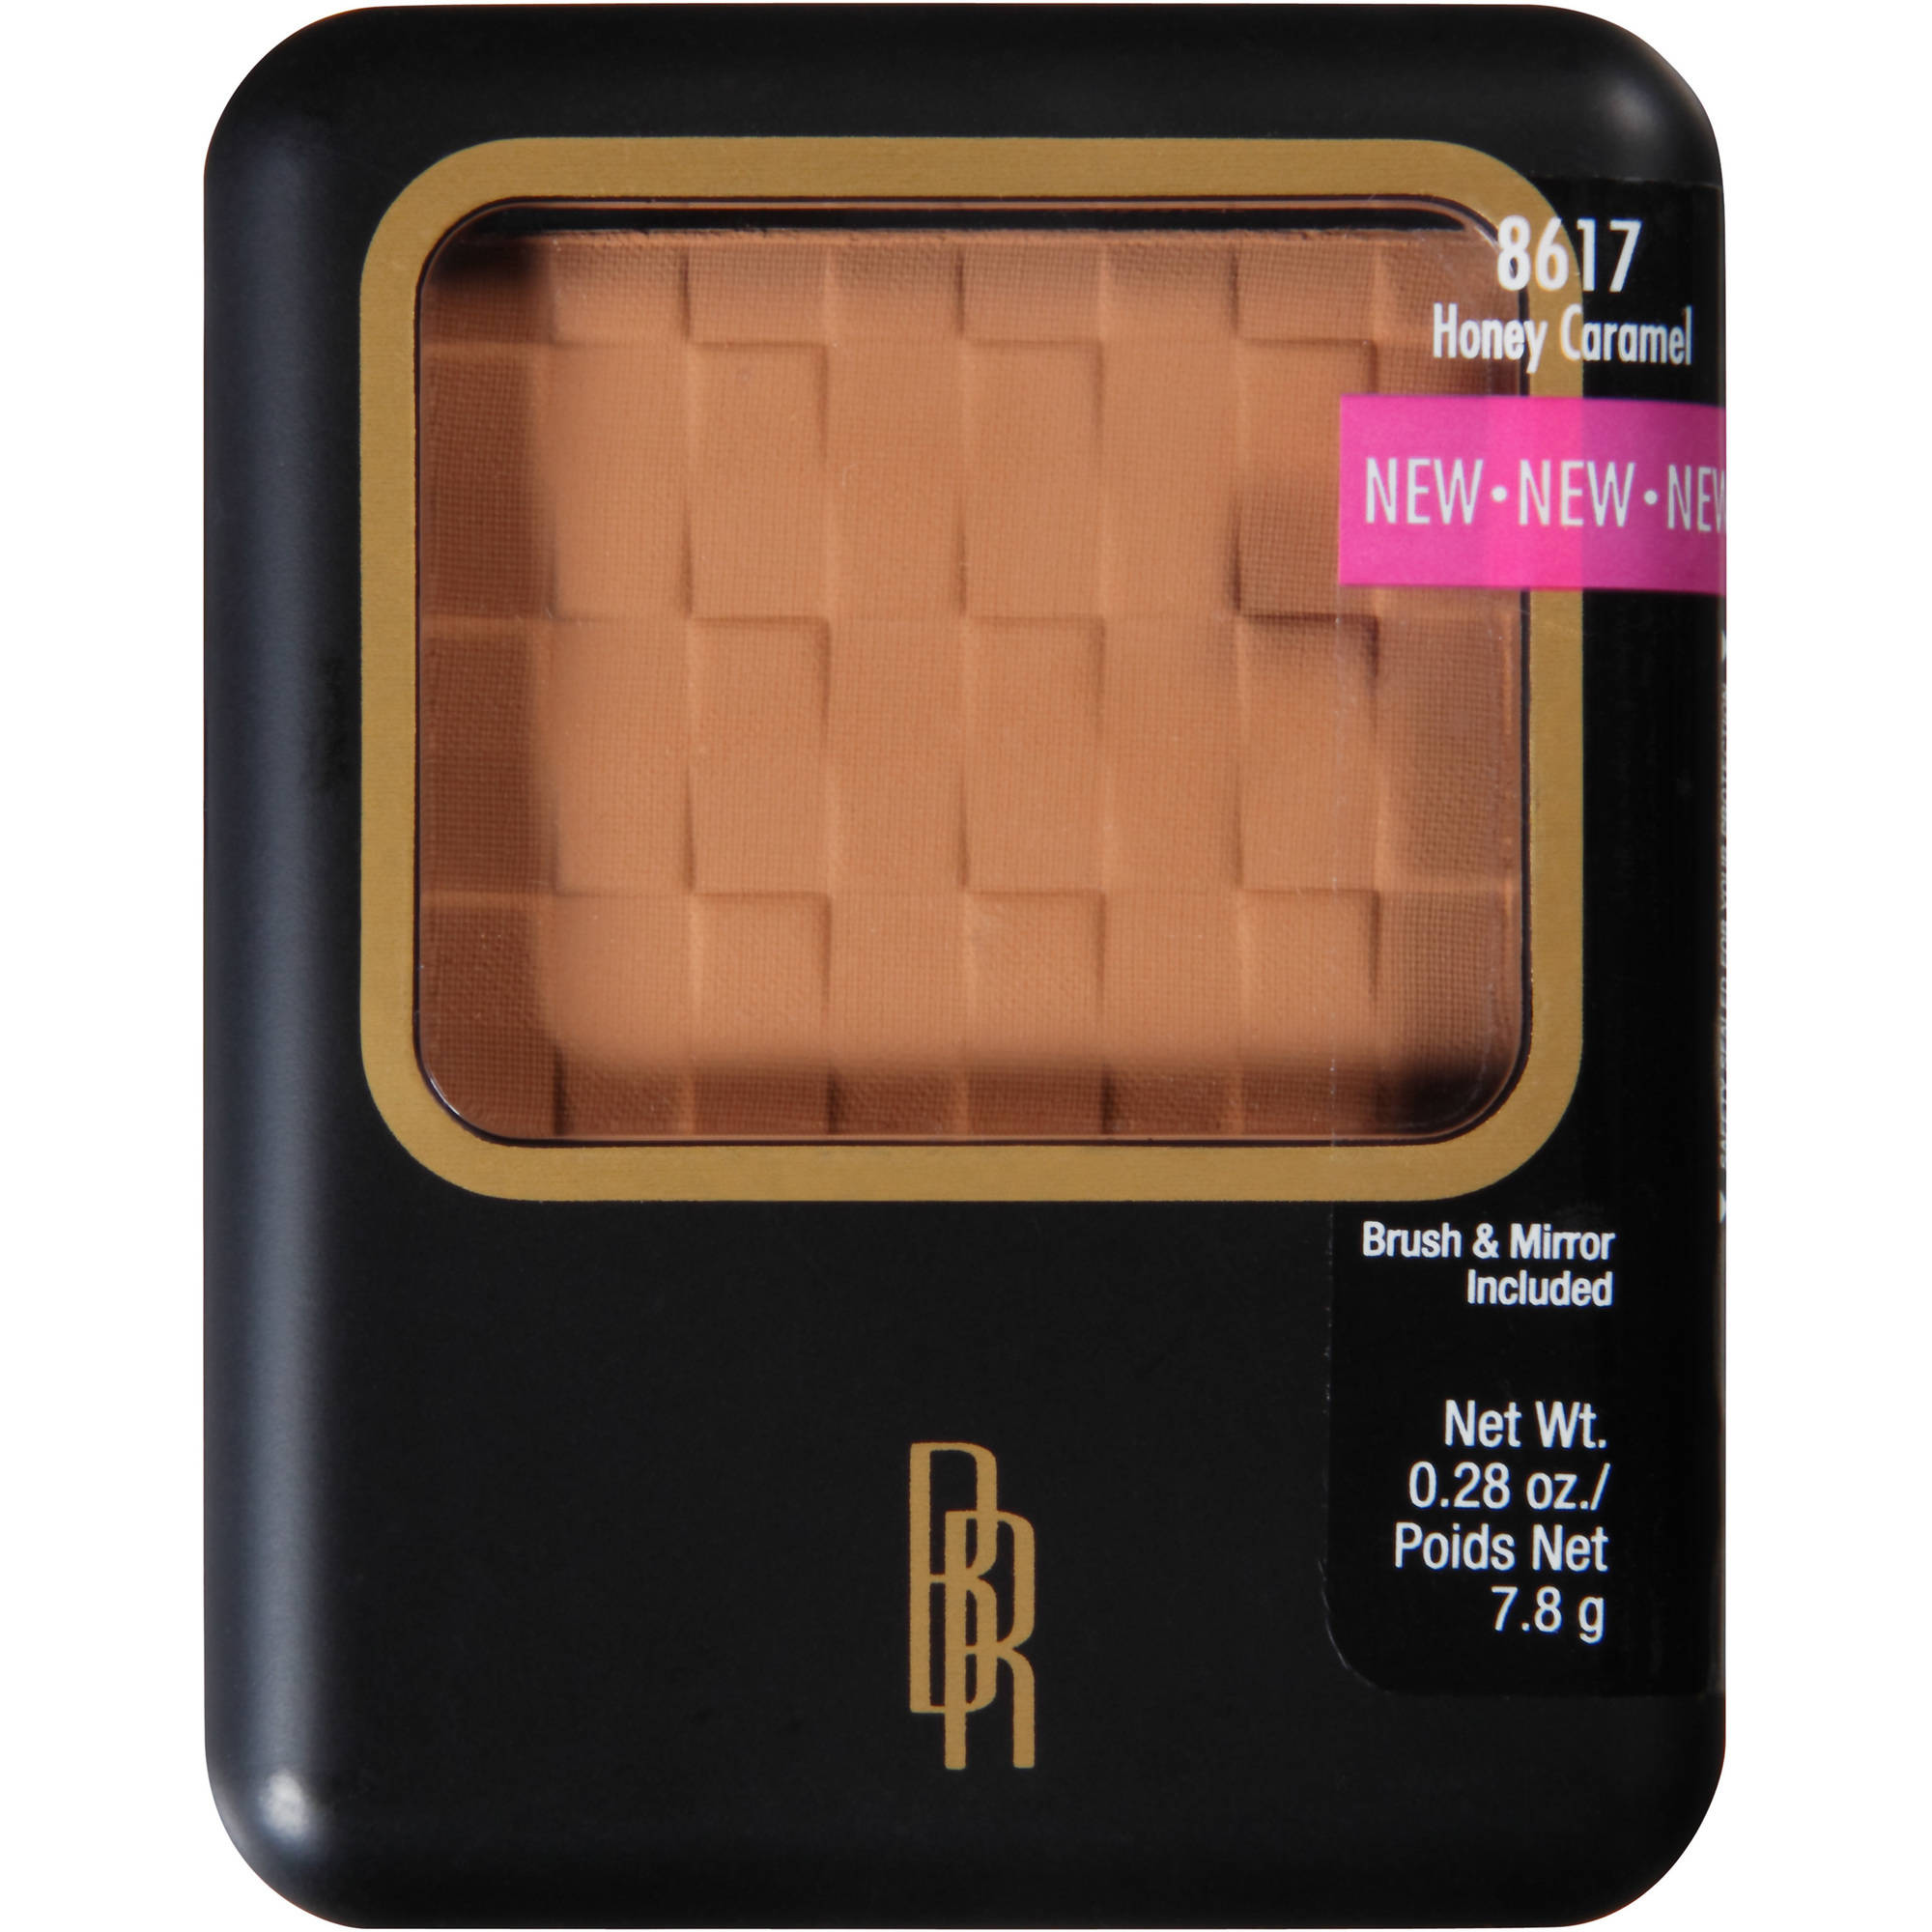 Black Radiance Pressed Powder, 8617 Honey Caramel, 0.28 oz